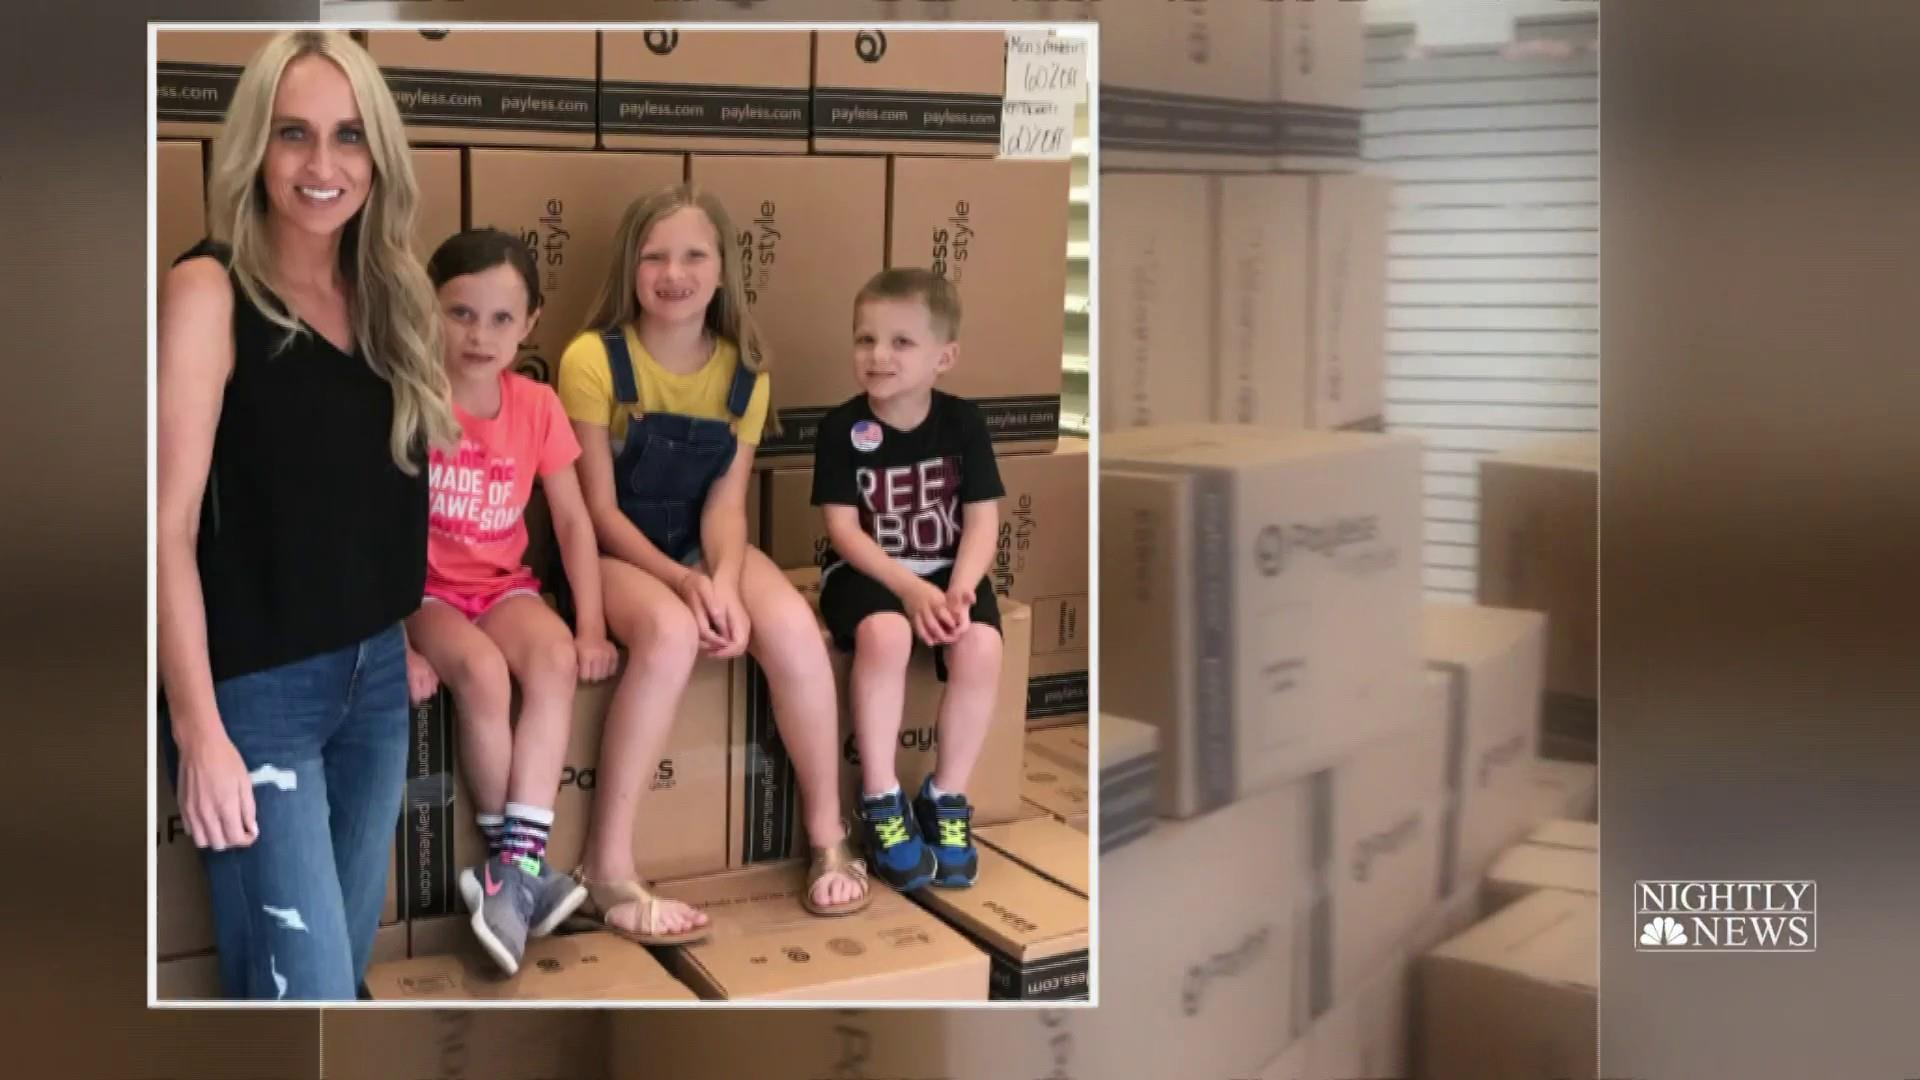 Arkansas mom buys 1,500 pairs of shoes in closing Payless for kids in need